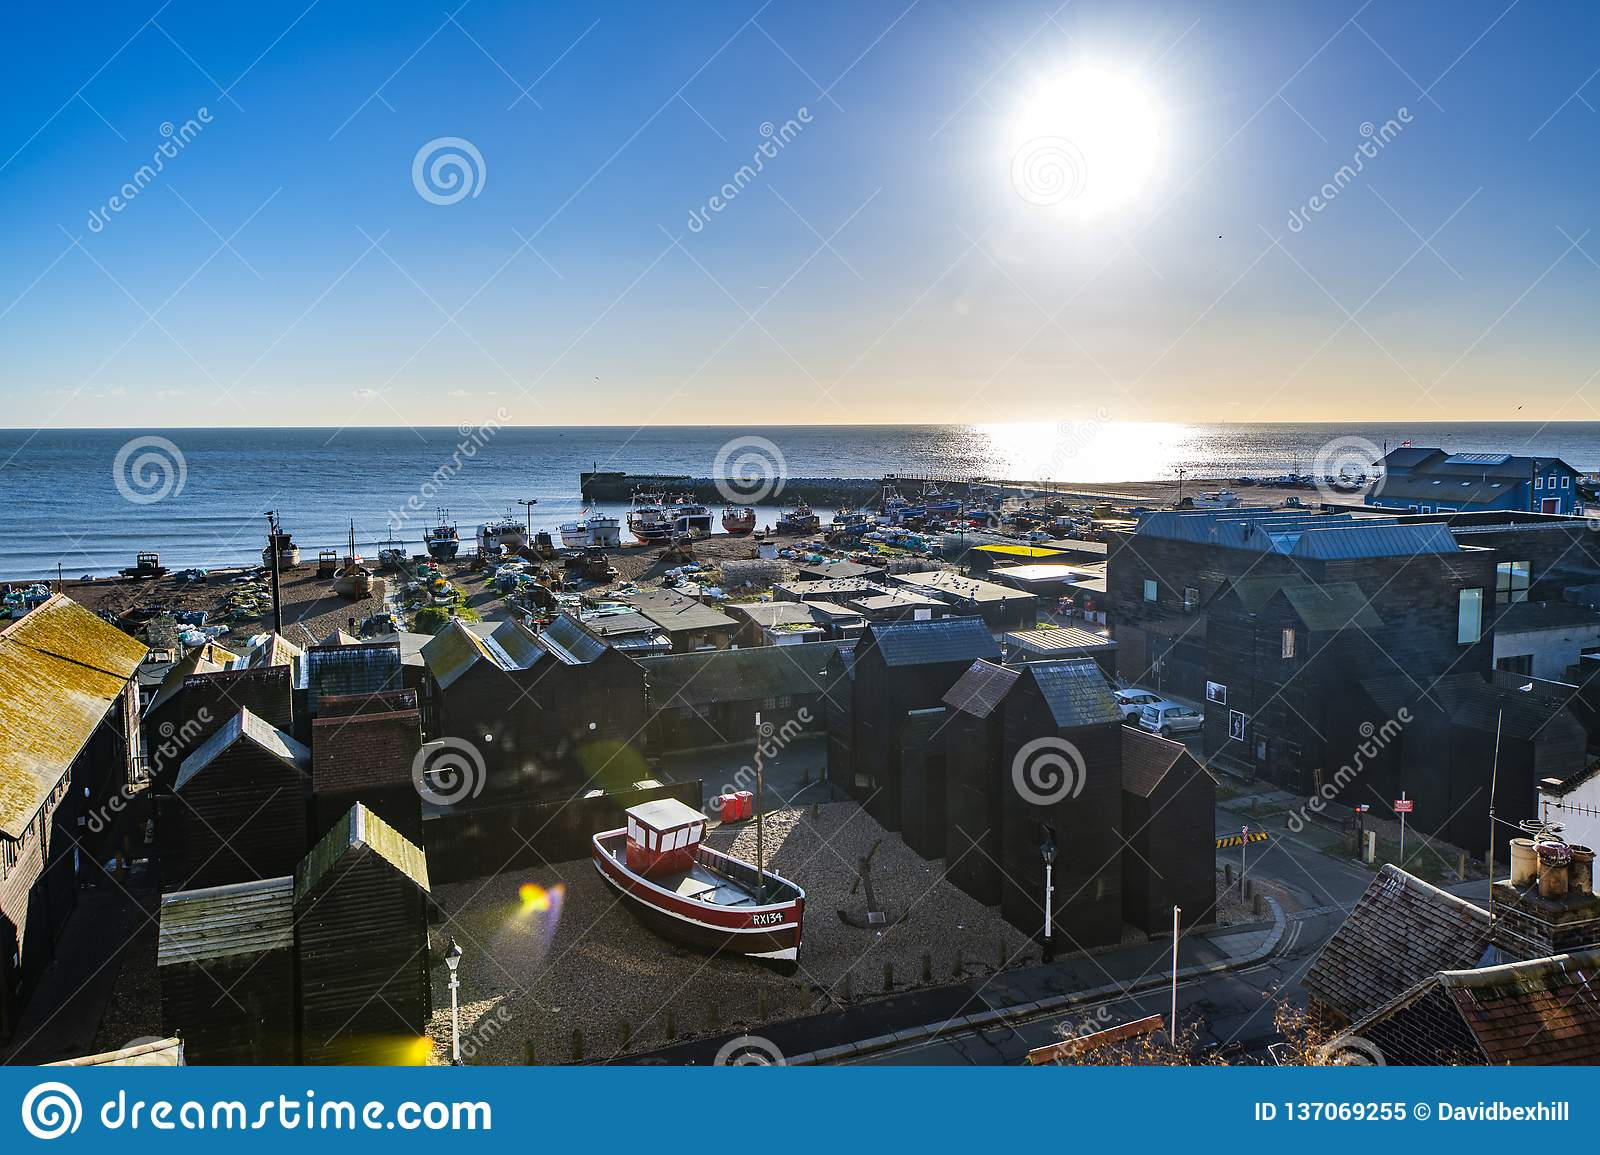 Hastings FIshing Quarter, in East Sussex, England